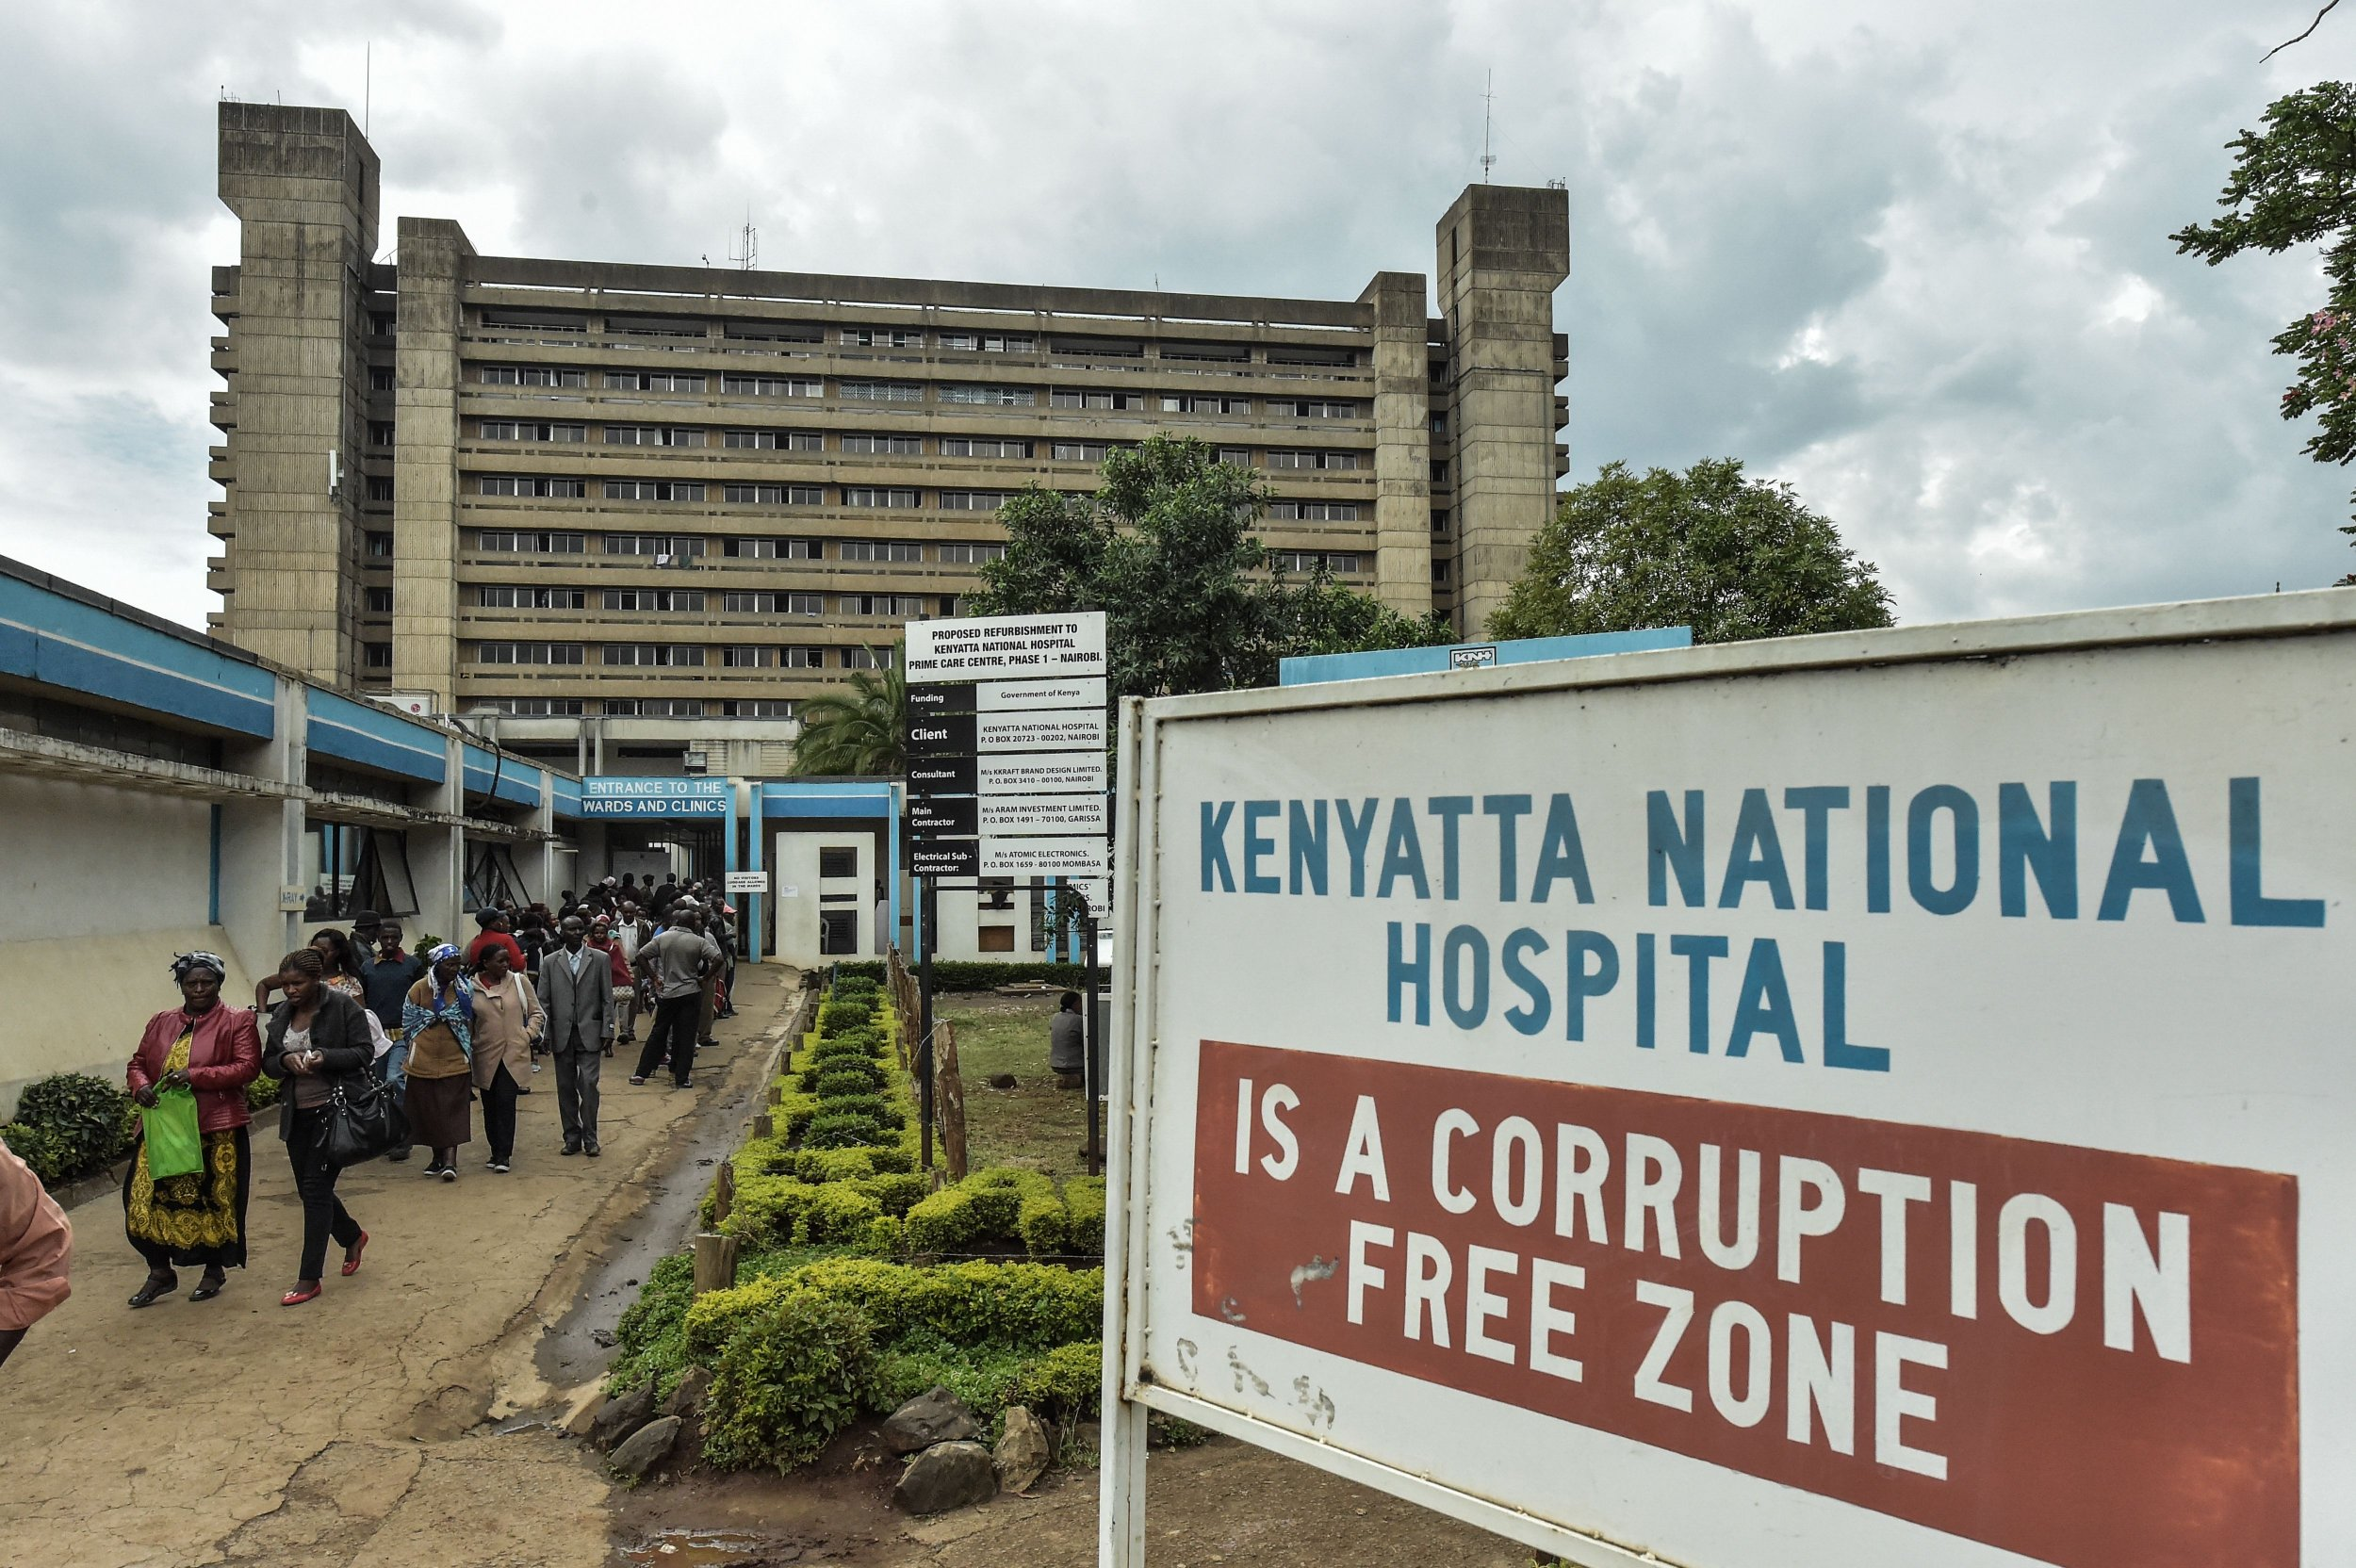 kenyatta-national-hospital